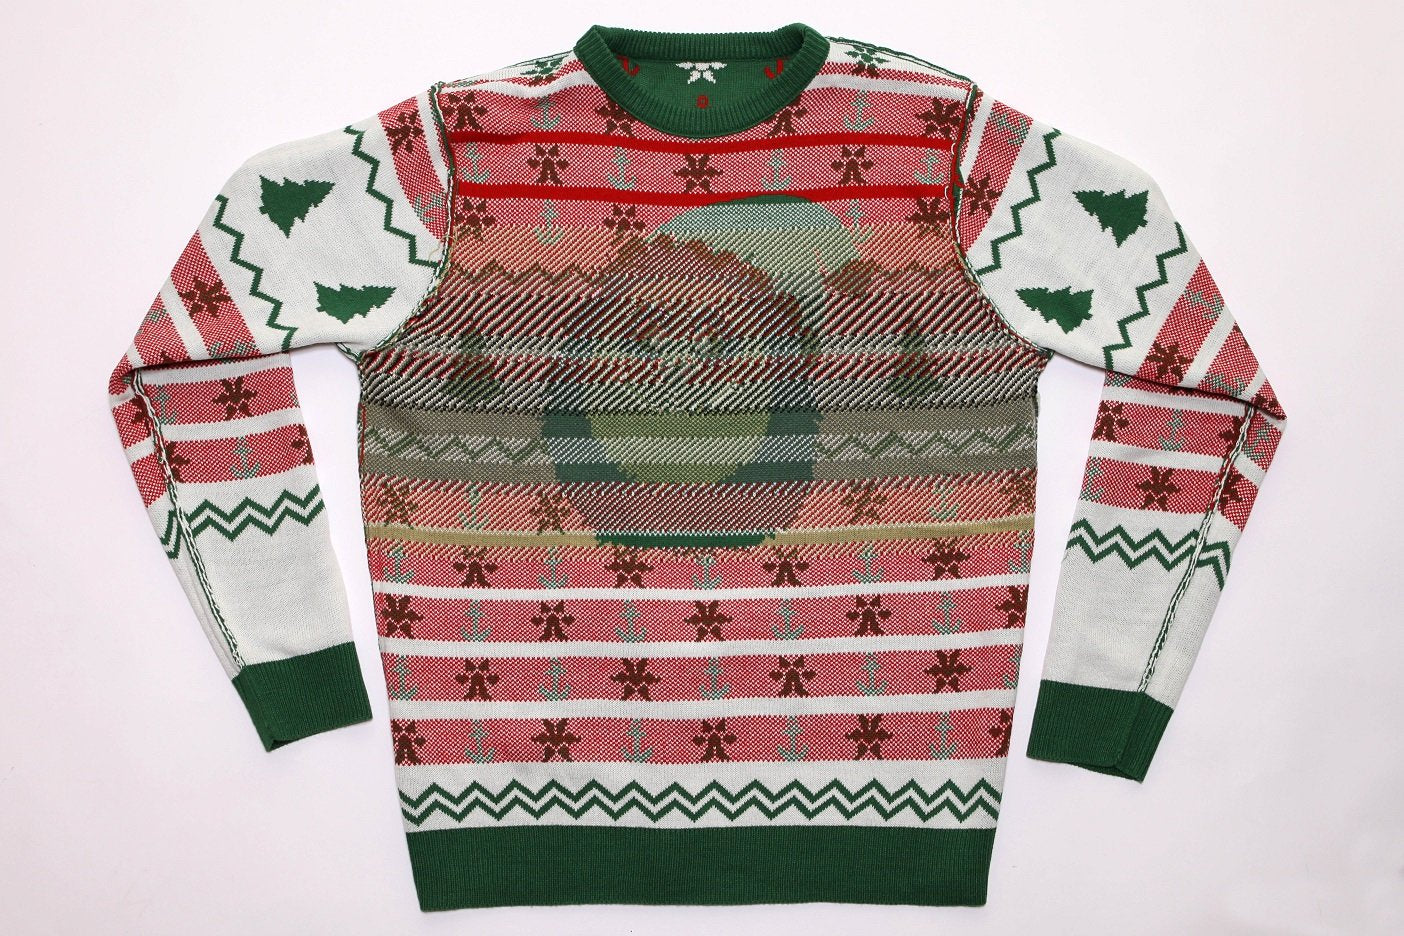 An image of the insude of an ugly sweater